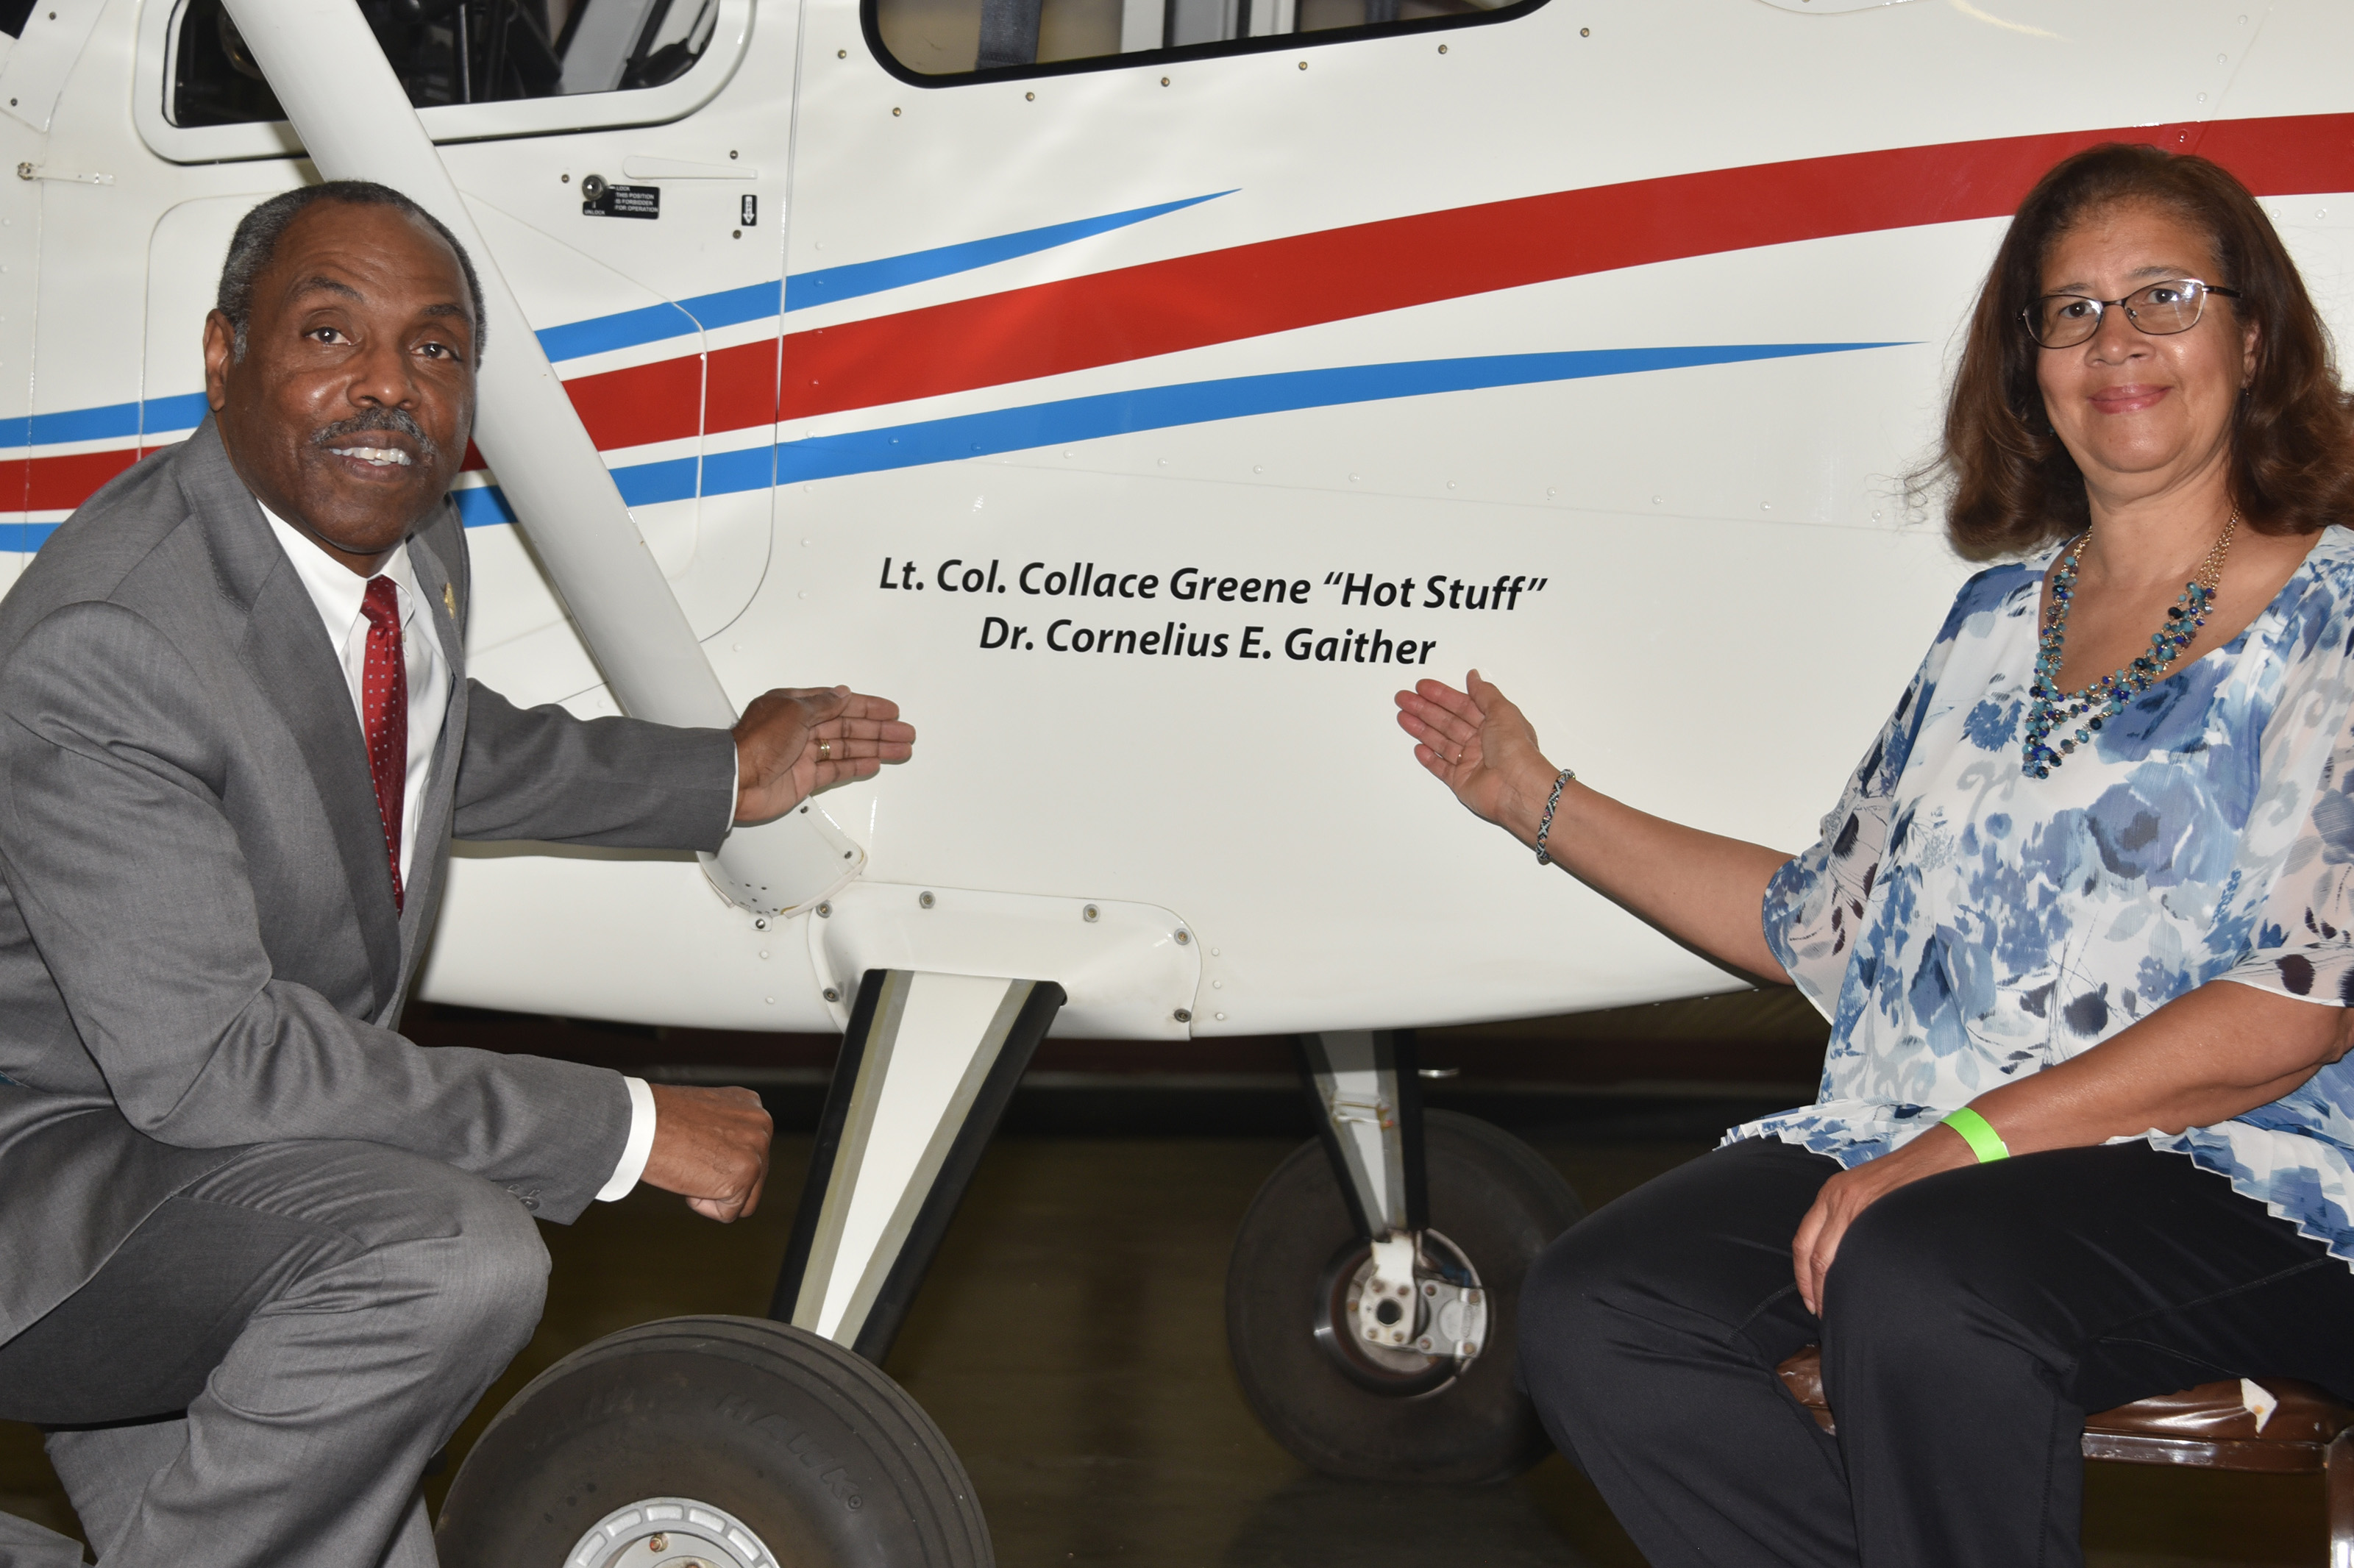 Dr. Collace Greene Jr. and Carol Clark pose at the Del State that has been renamed after their fathers.